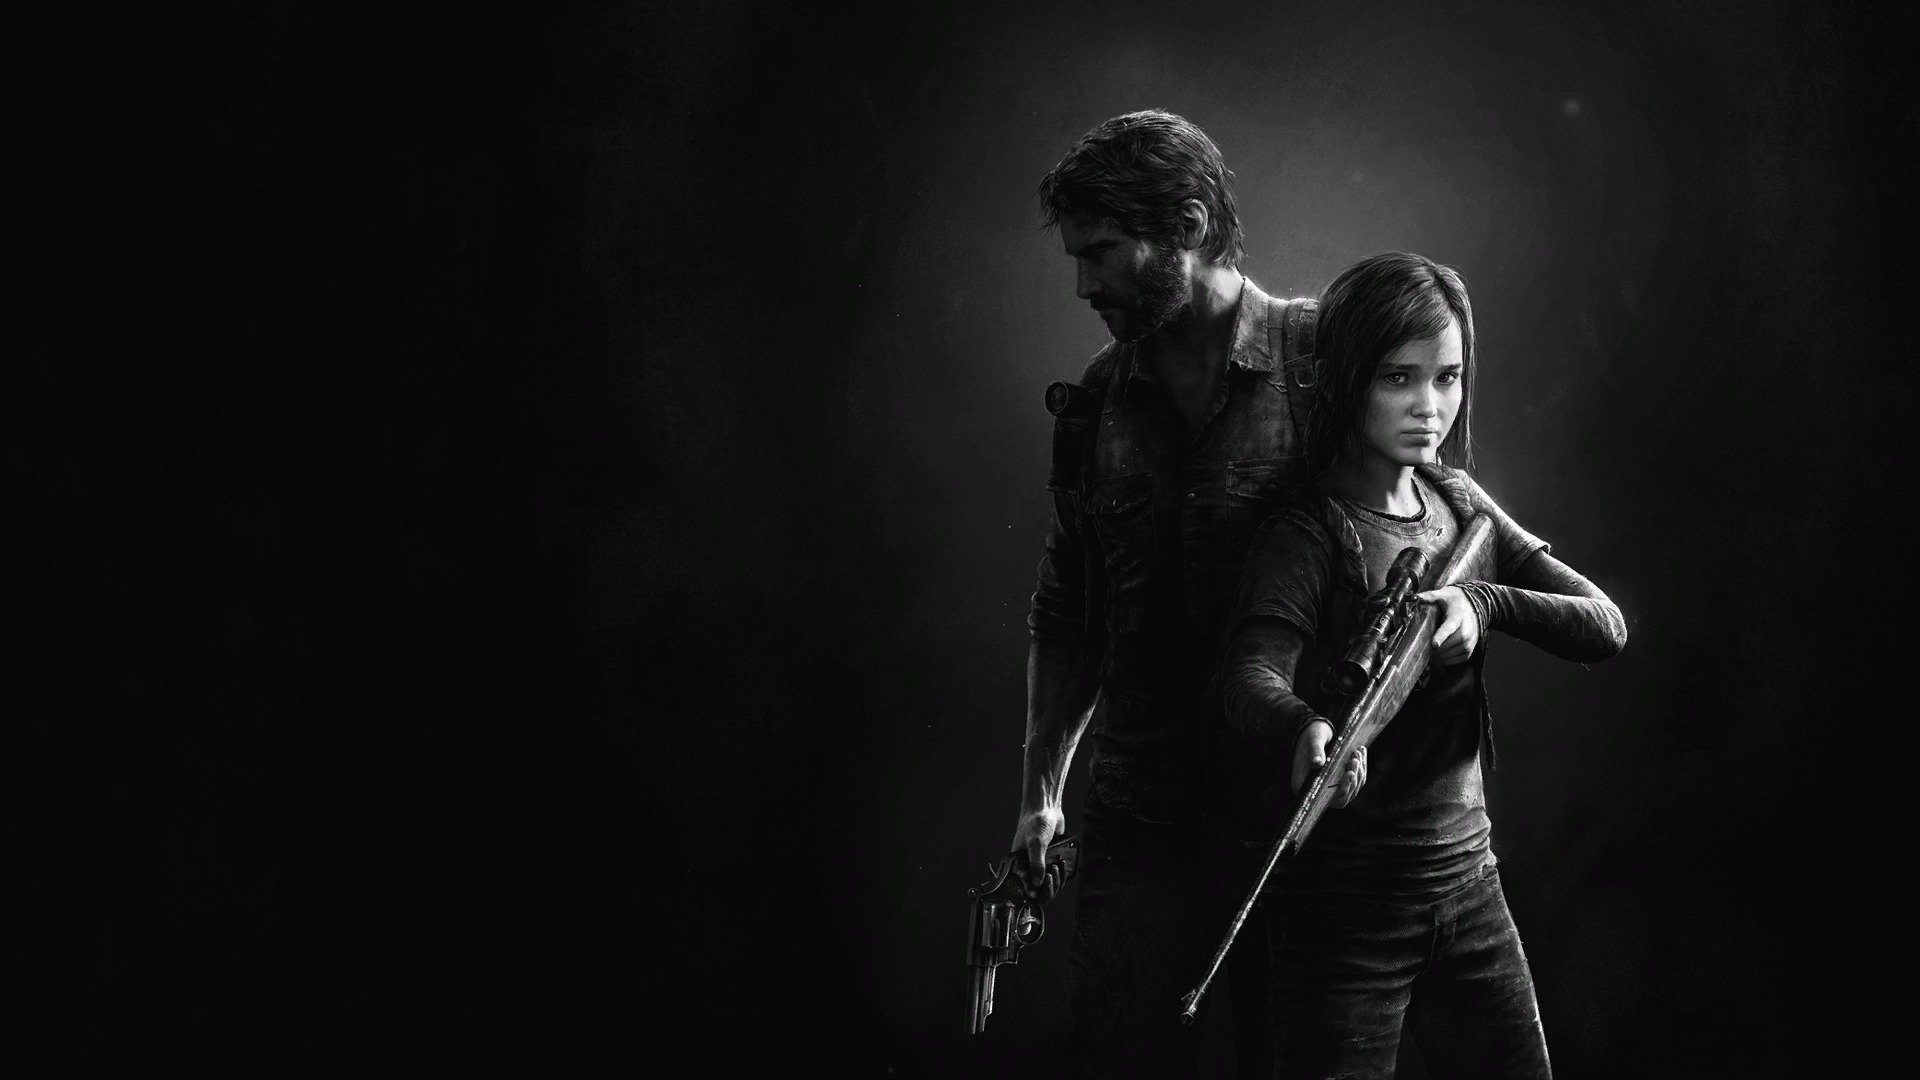 10 New Last Of Us Wallpaper 1920X1080 FULL HD 1080p For PC Background